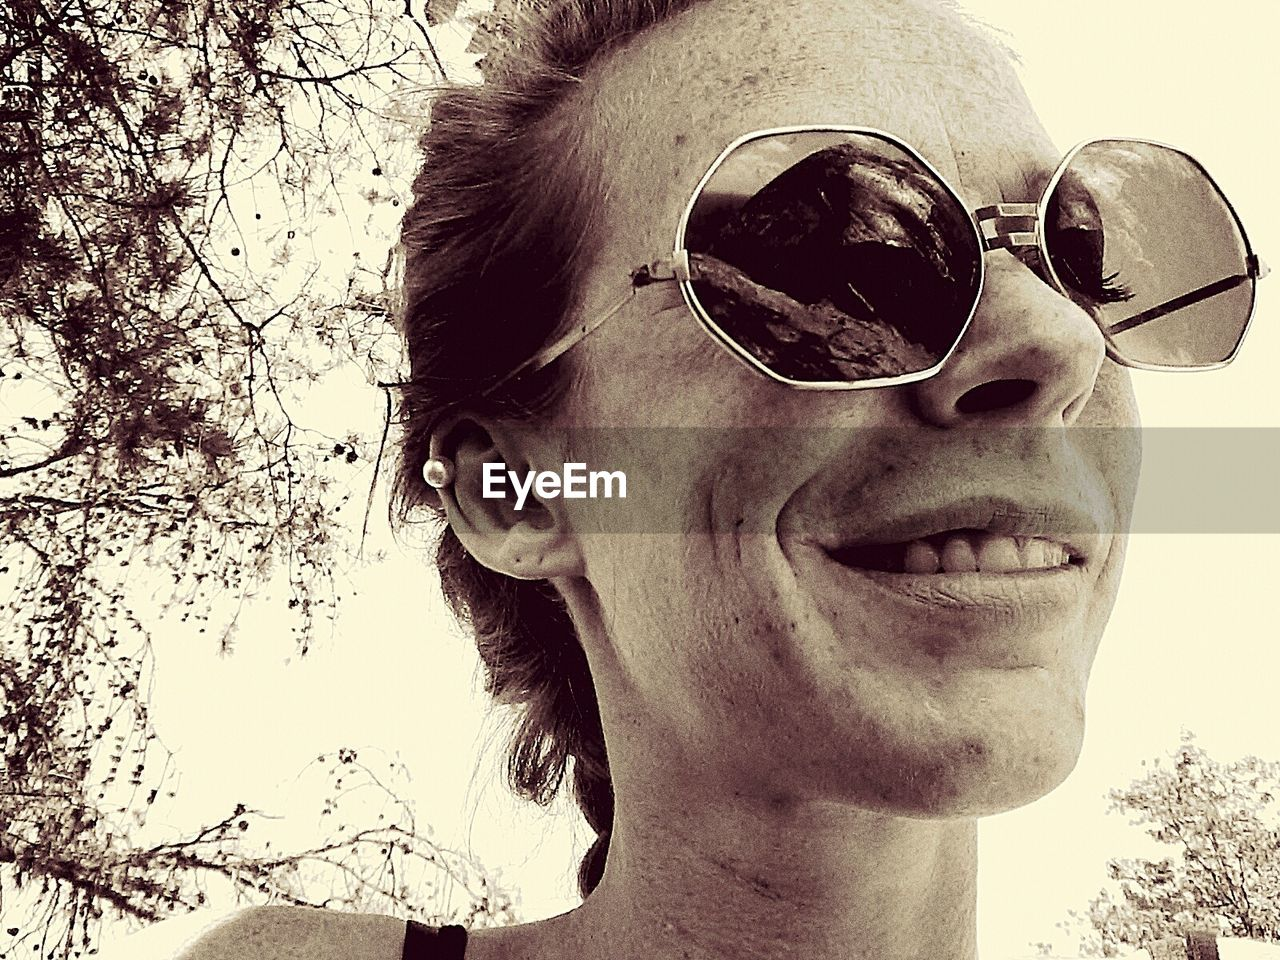 sunglasses, glasses, fashion, headshot, portrait, one person, close-up, smiling, real people, lifestyles, security, protection, day, tree, nature, young adult, leisure activity, mid adult, outdoors, human face